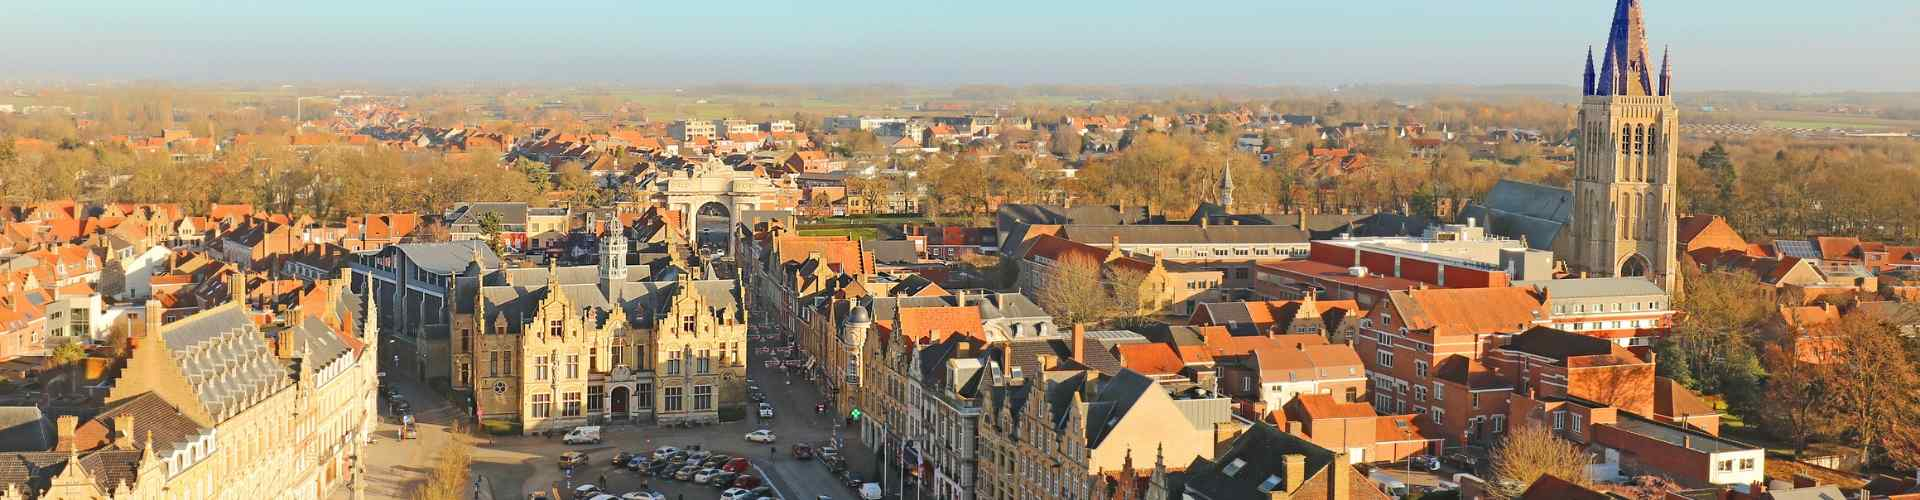 School English Literature day Trip to Ypres